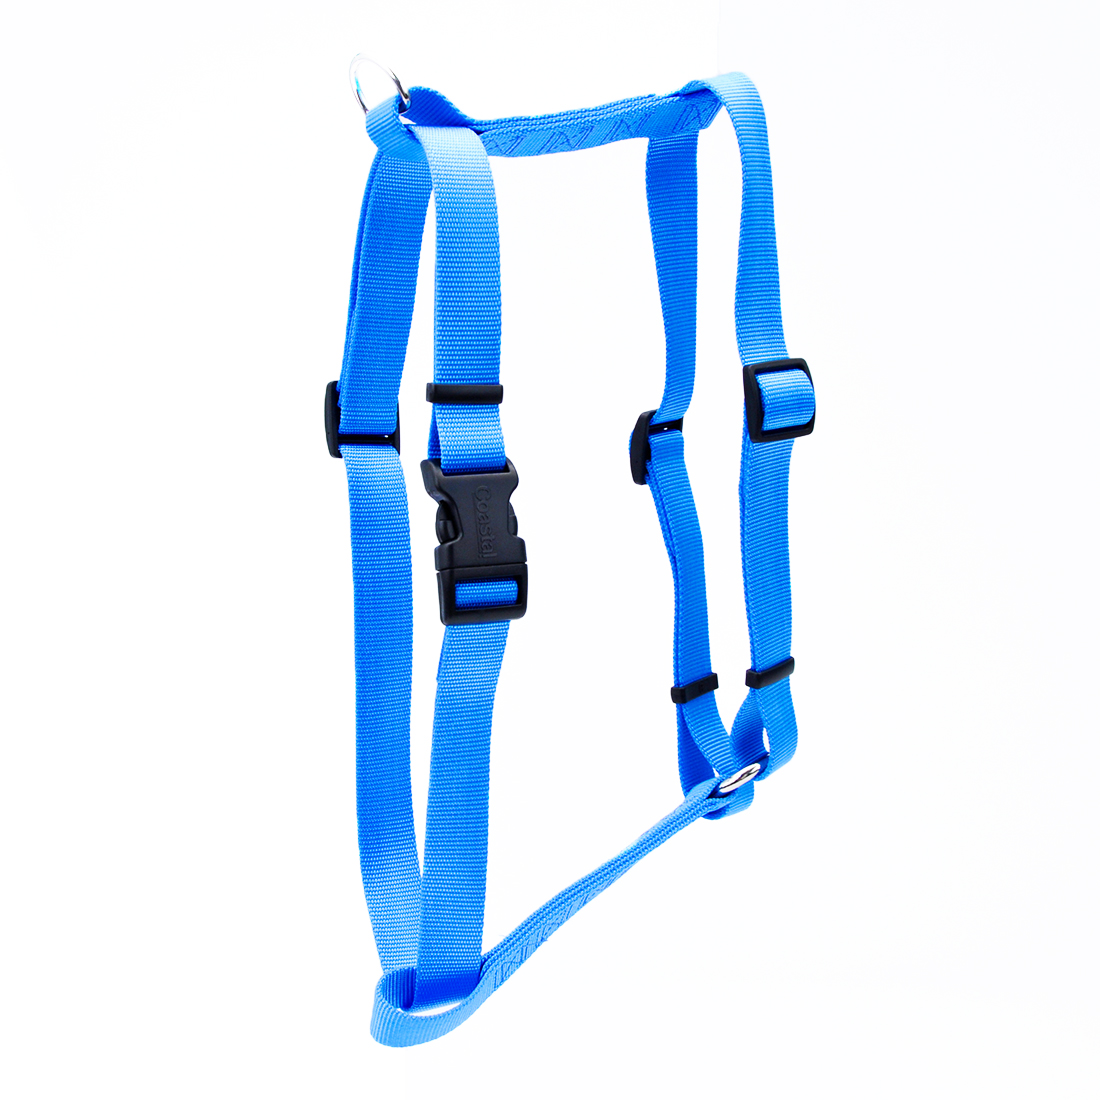 Standard Adjustable Dog Harness